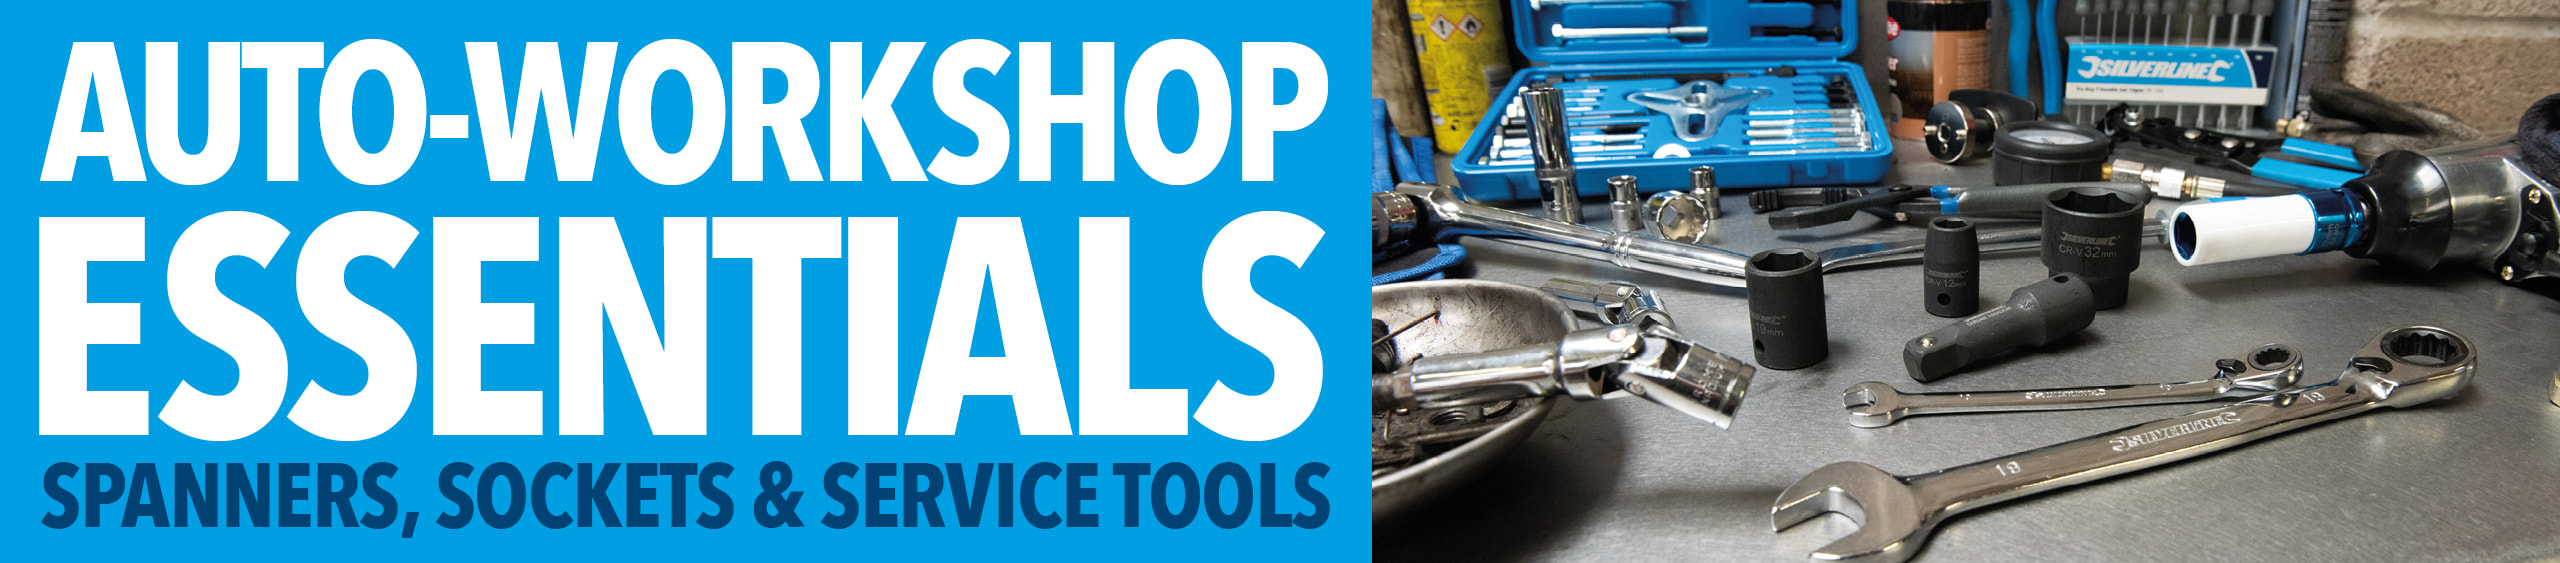 Silverline_Auto-Workshop_Essentials